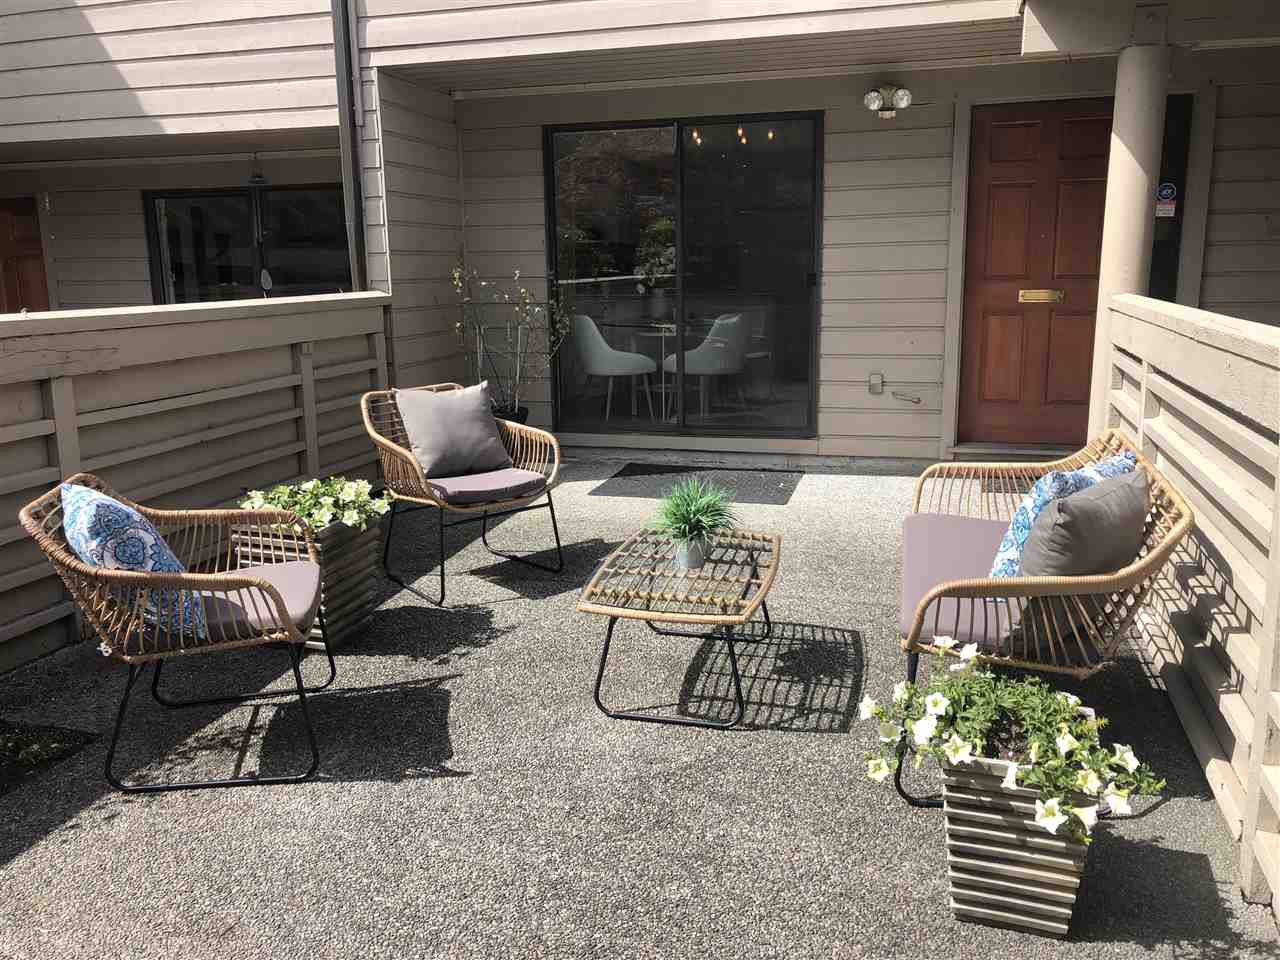 Photo 6: Photos: 2159 MCMULLEN Avenue in Vancouver: Quilchena Townhouse for sale (Vancouver West)  : MLS®# R2455599